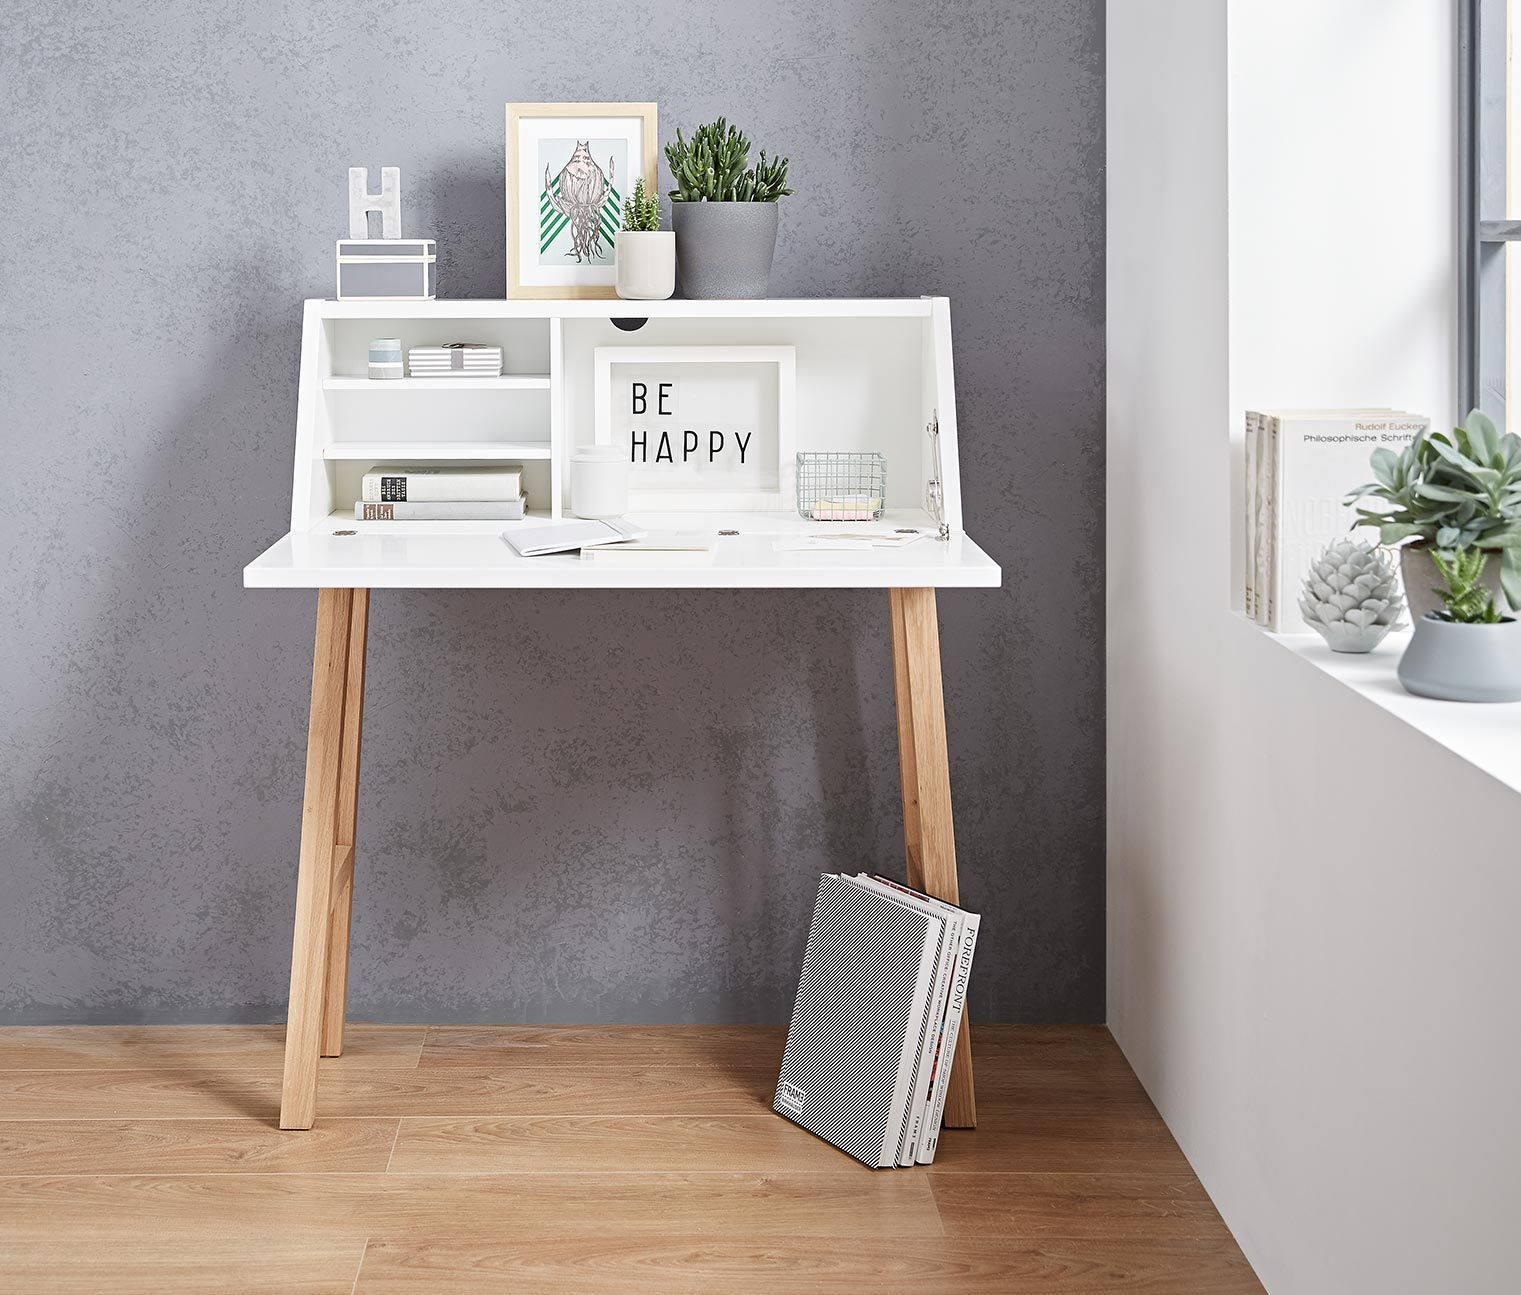 Möbel Märki Sekretär Sekretär 木作 Pinterest Desk Secretary Desks And Home Office